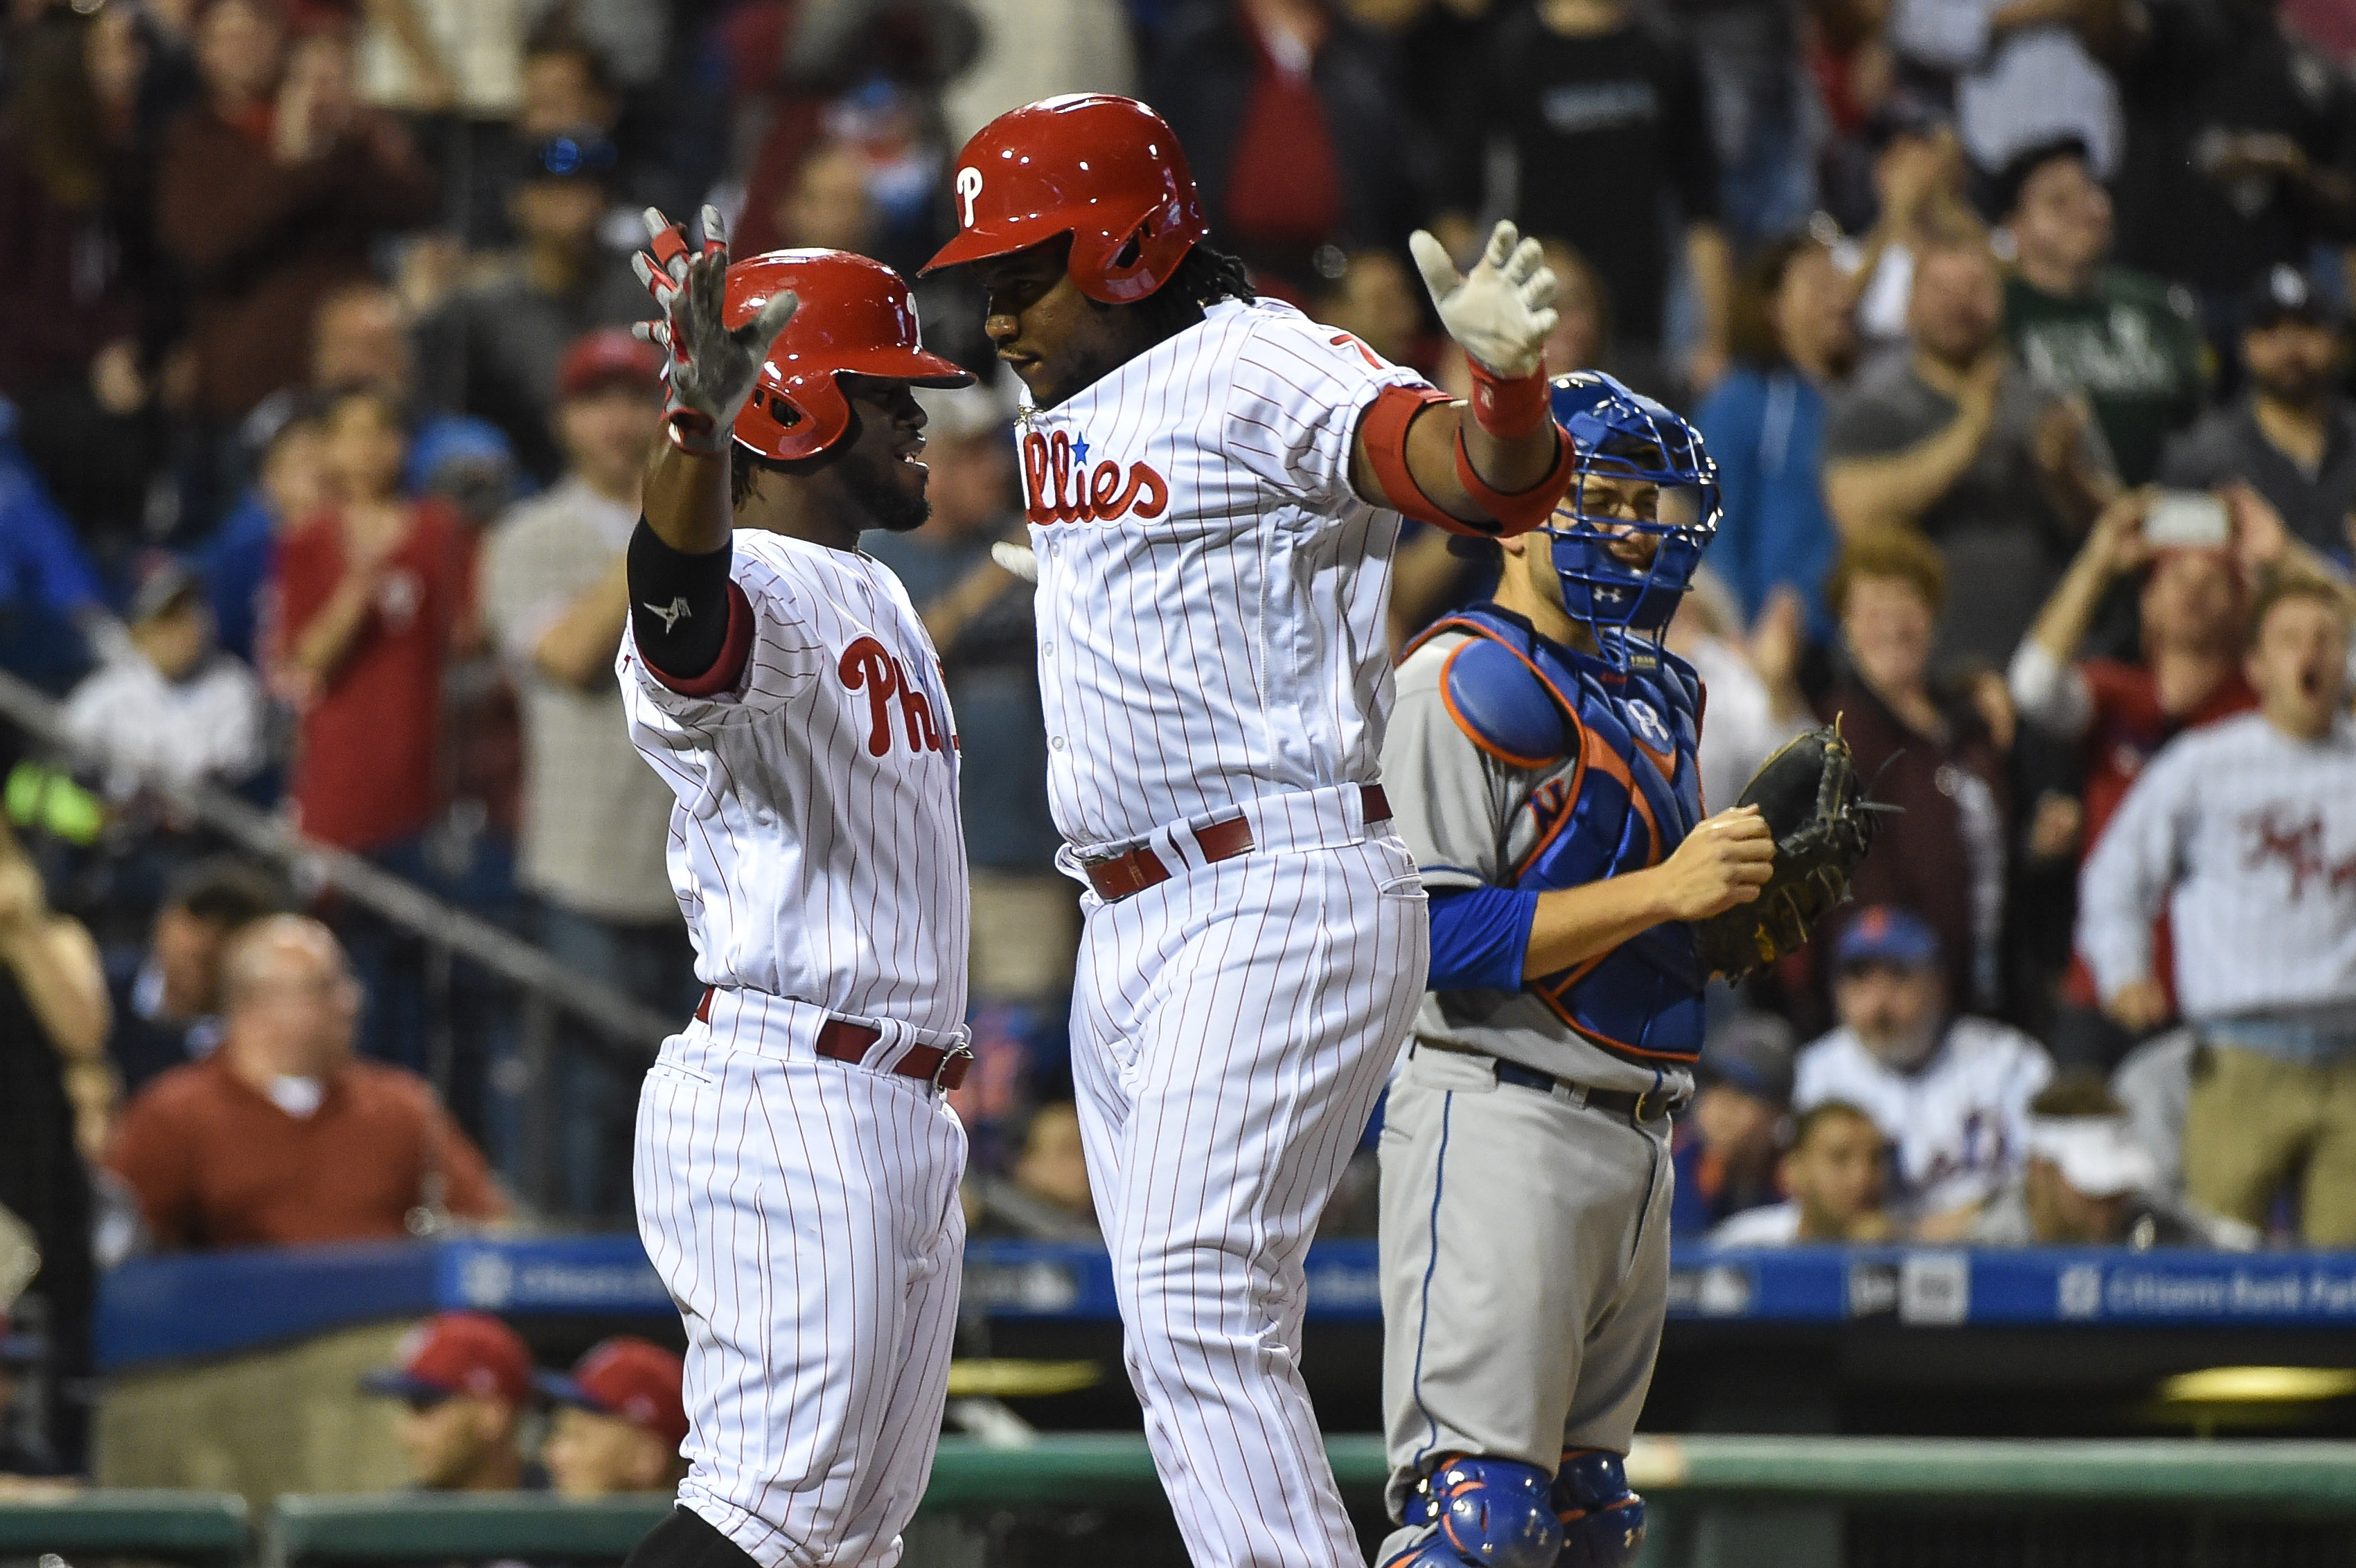 Murphy's RBI double in 10th lifts Nationals over Phils 3-2